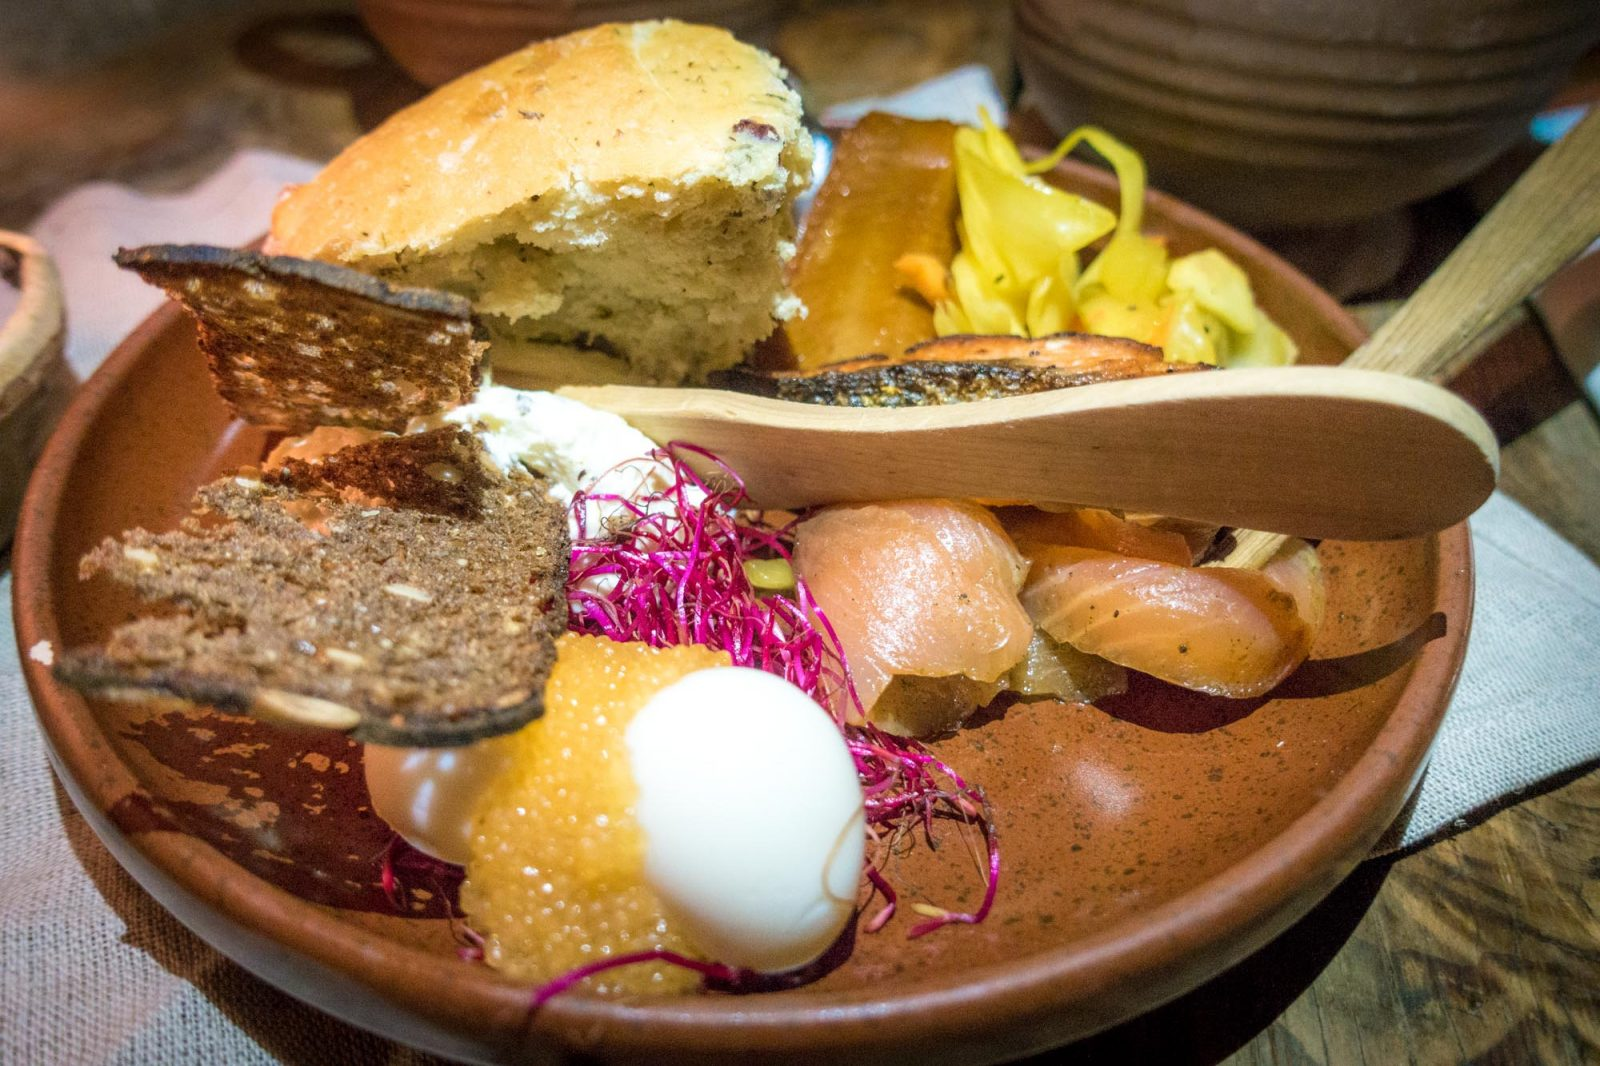 Things to do in Tallinn: A feast at Olde Hansa, Tallinn, Estonia